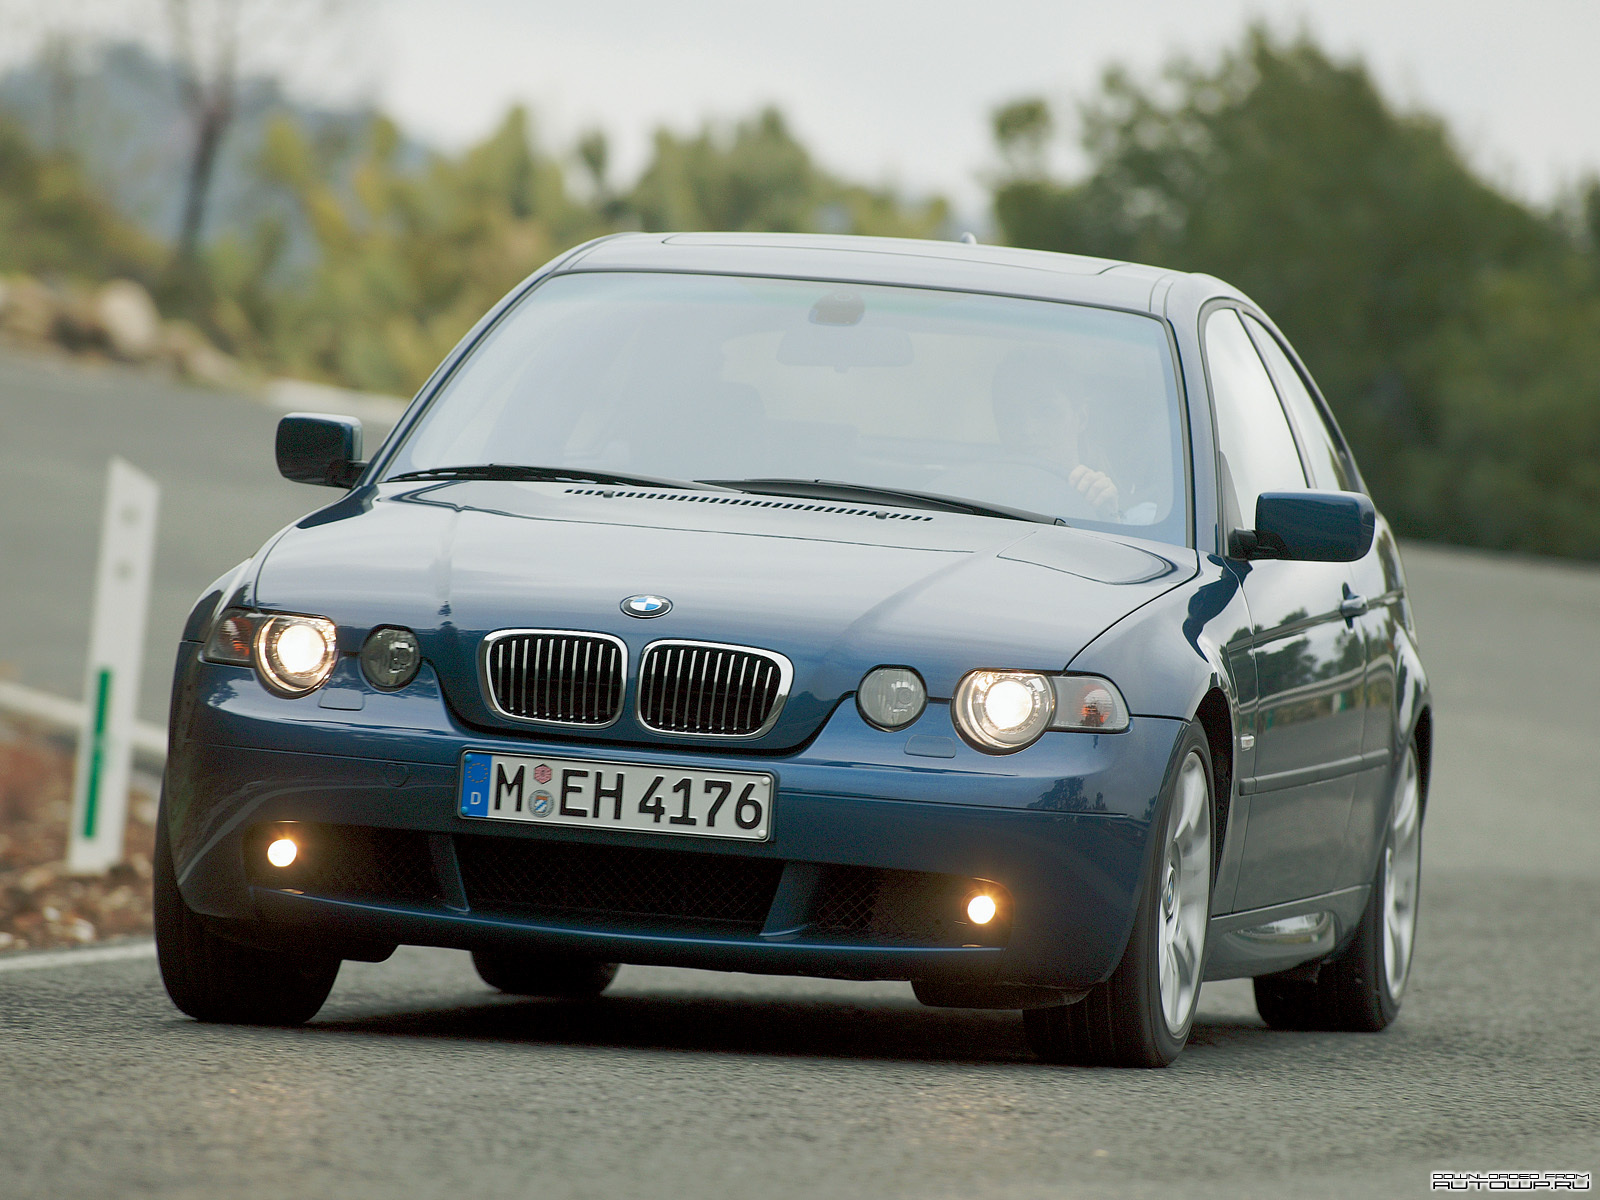 bmw 3 series e46 compact picture 63697 bmw photo. Black Bedroom Furniture Sets. Home Design Ideas